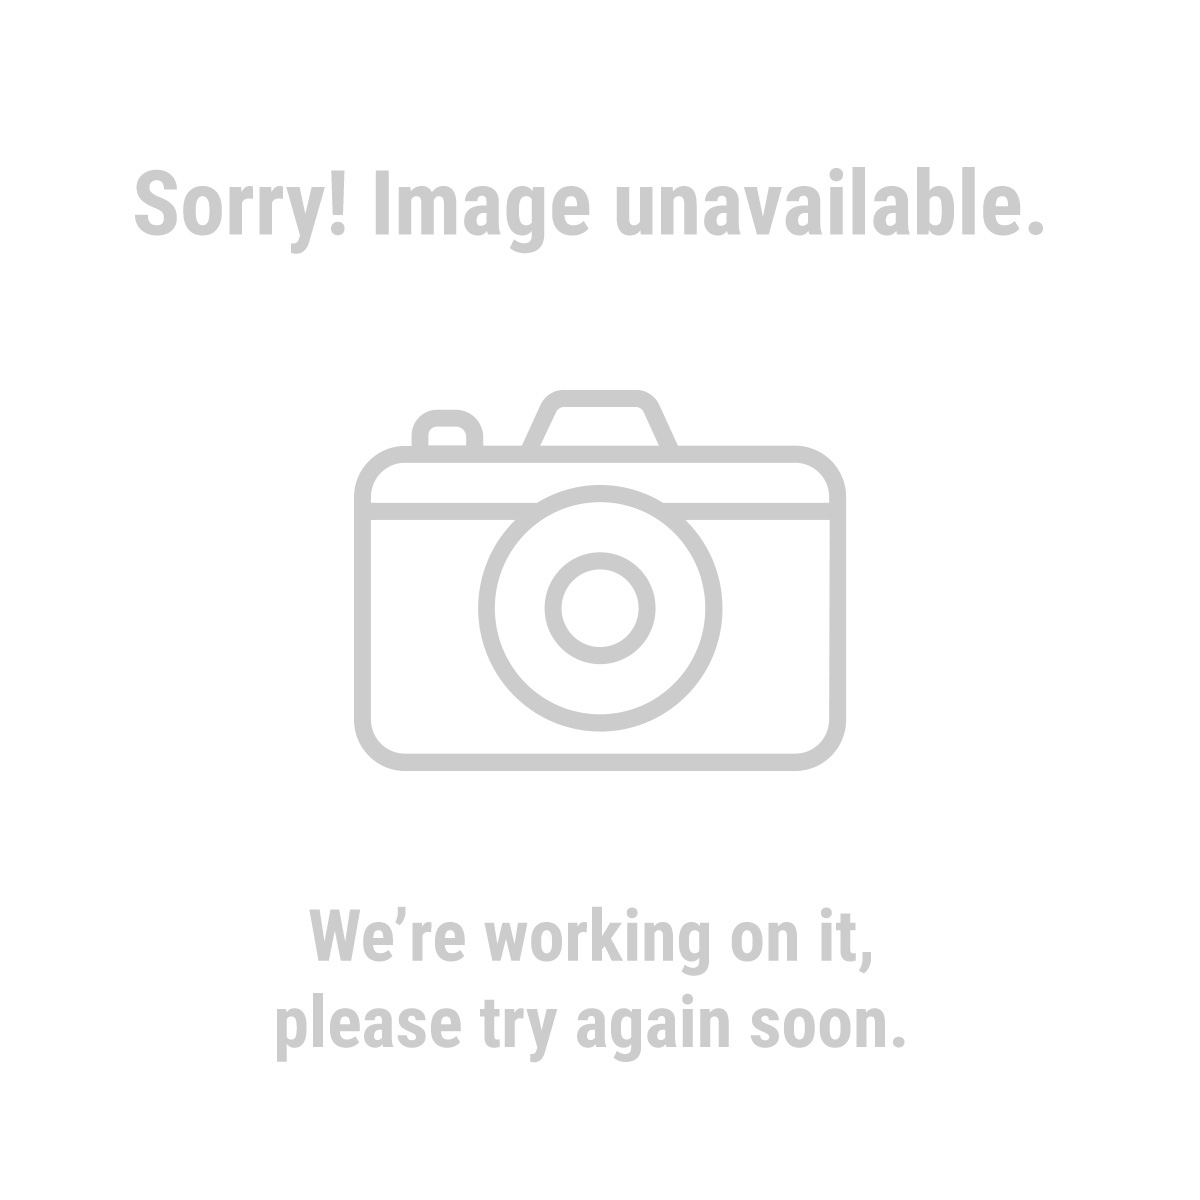 Car Wash Power Wand With Soap Dispenser